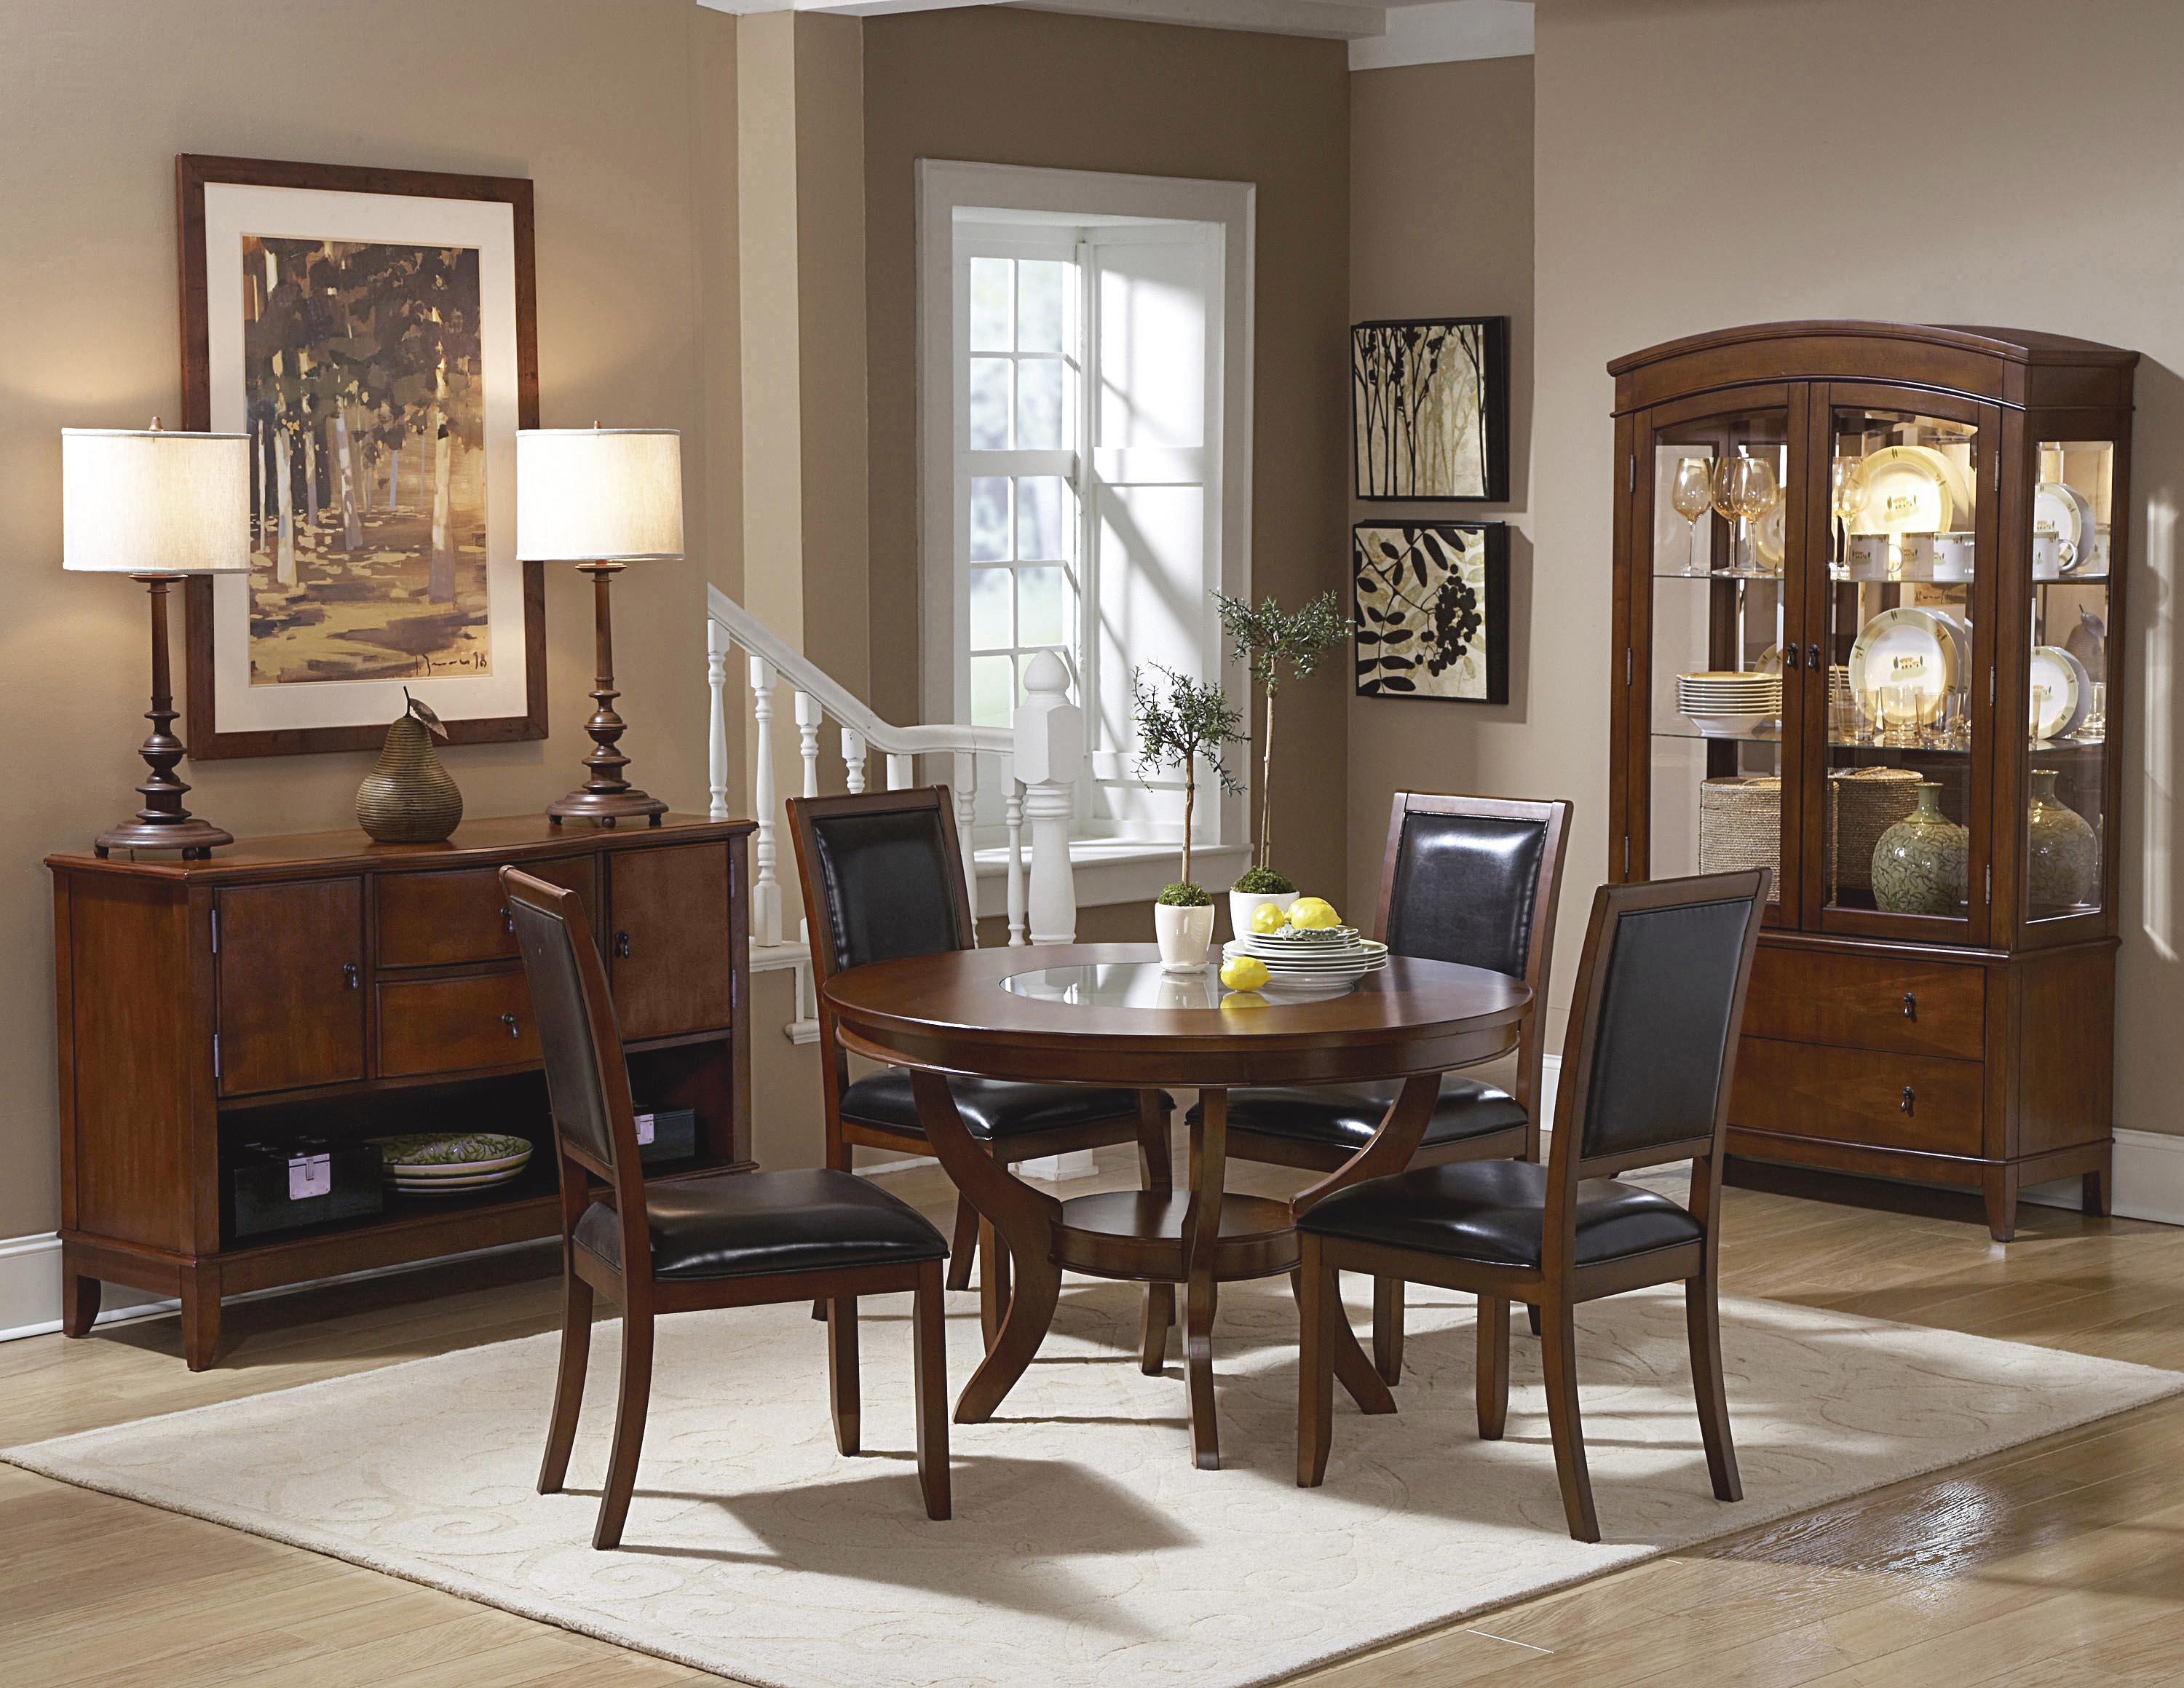 Homelegance Avalon 5pc Round Dining Table Set In Cherry By